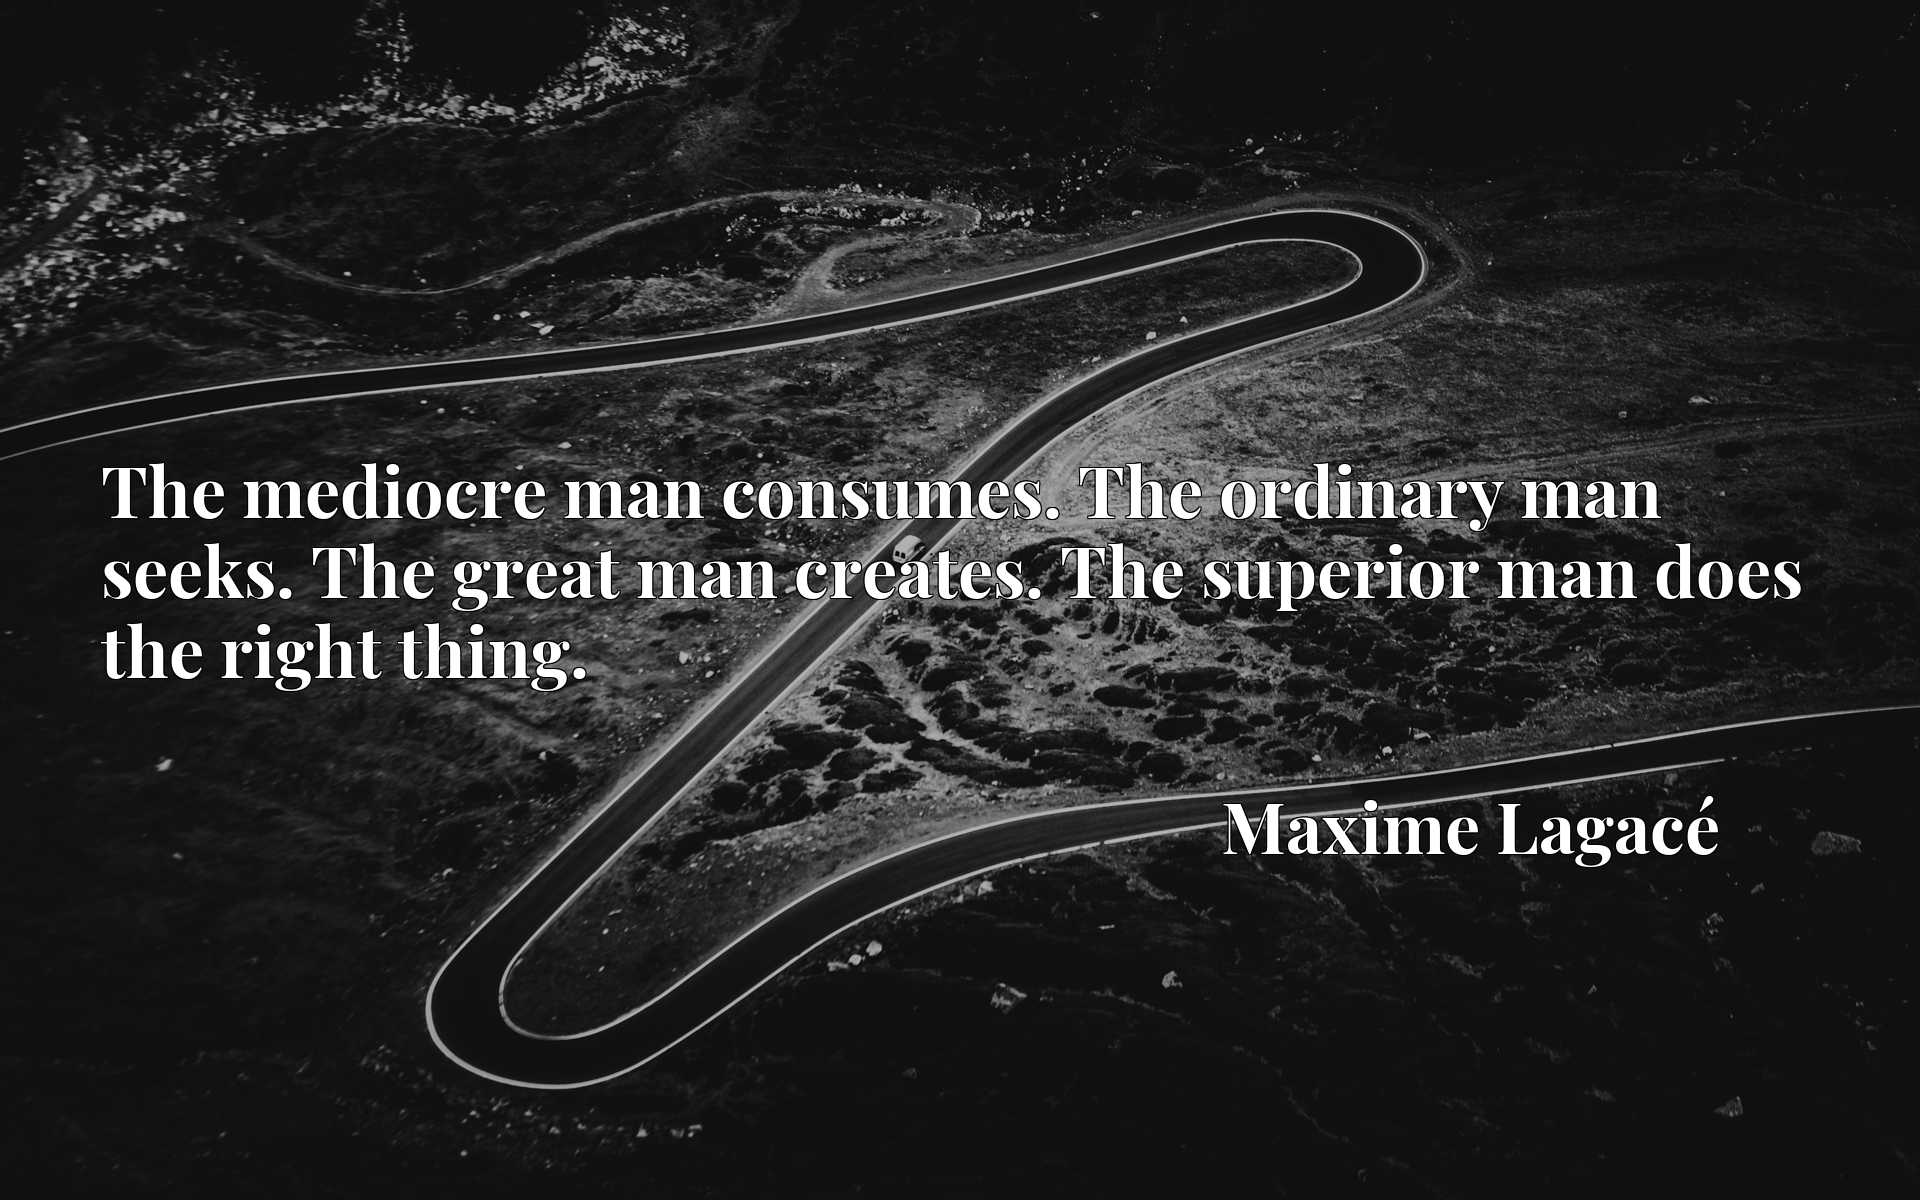 The mediocre man consumes. The ordinary man seeks. The great man creates. The superior man does the right thing.